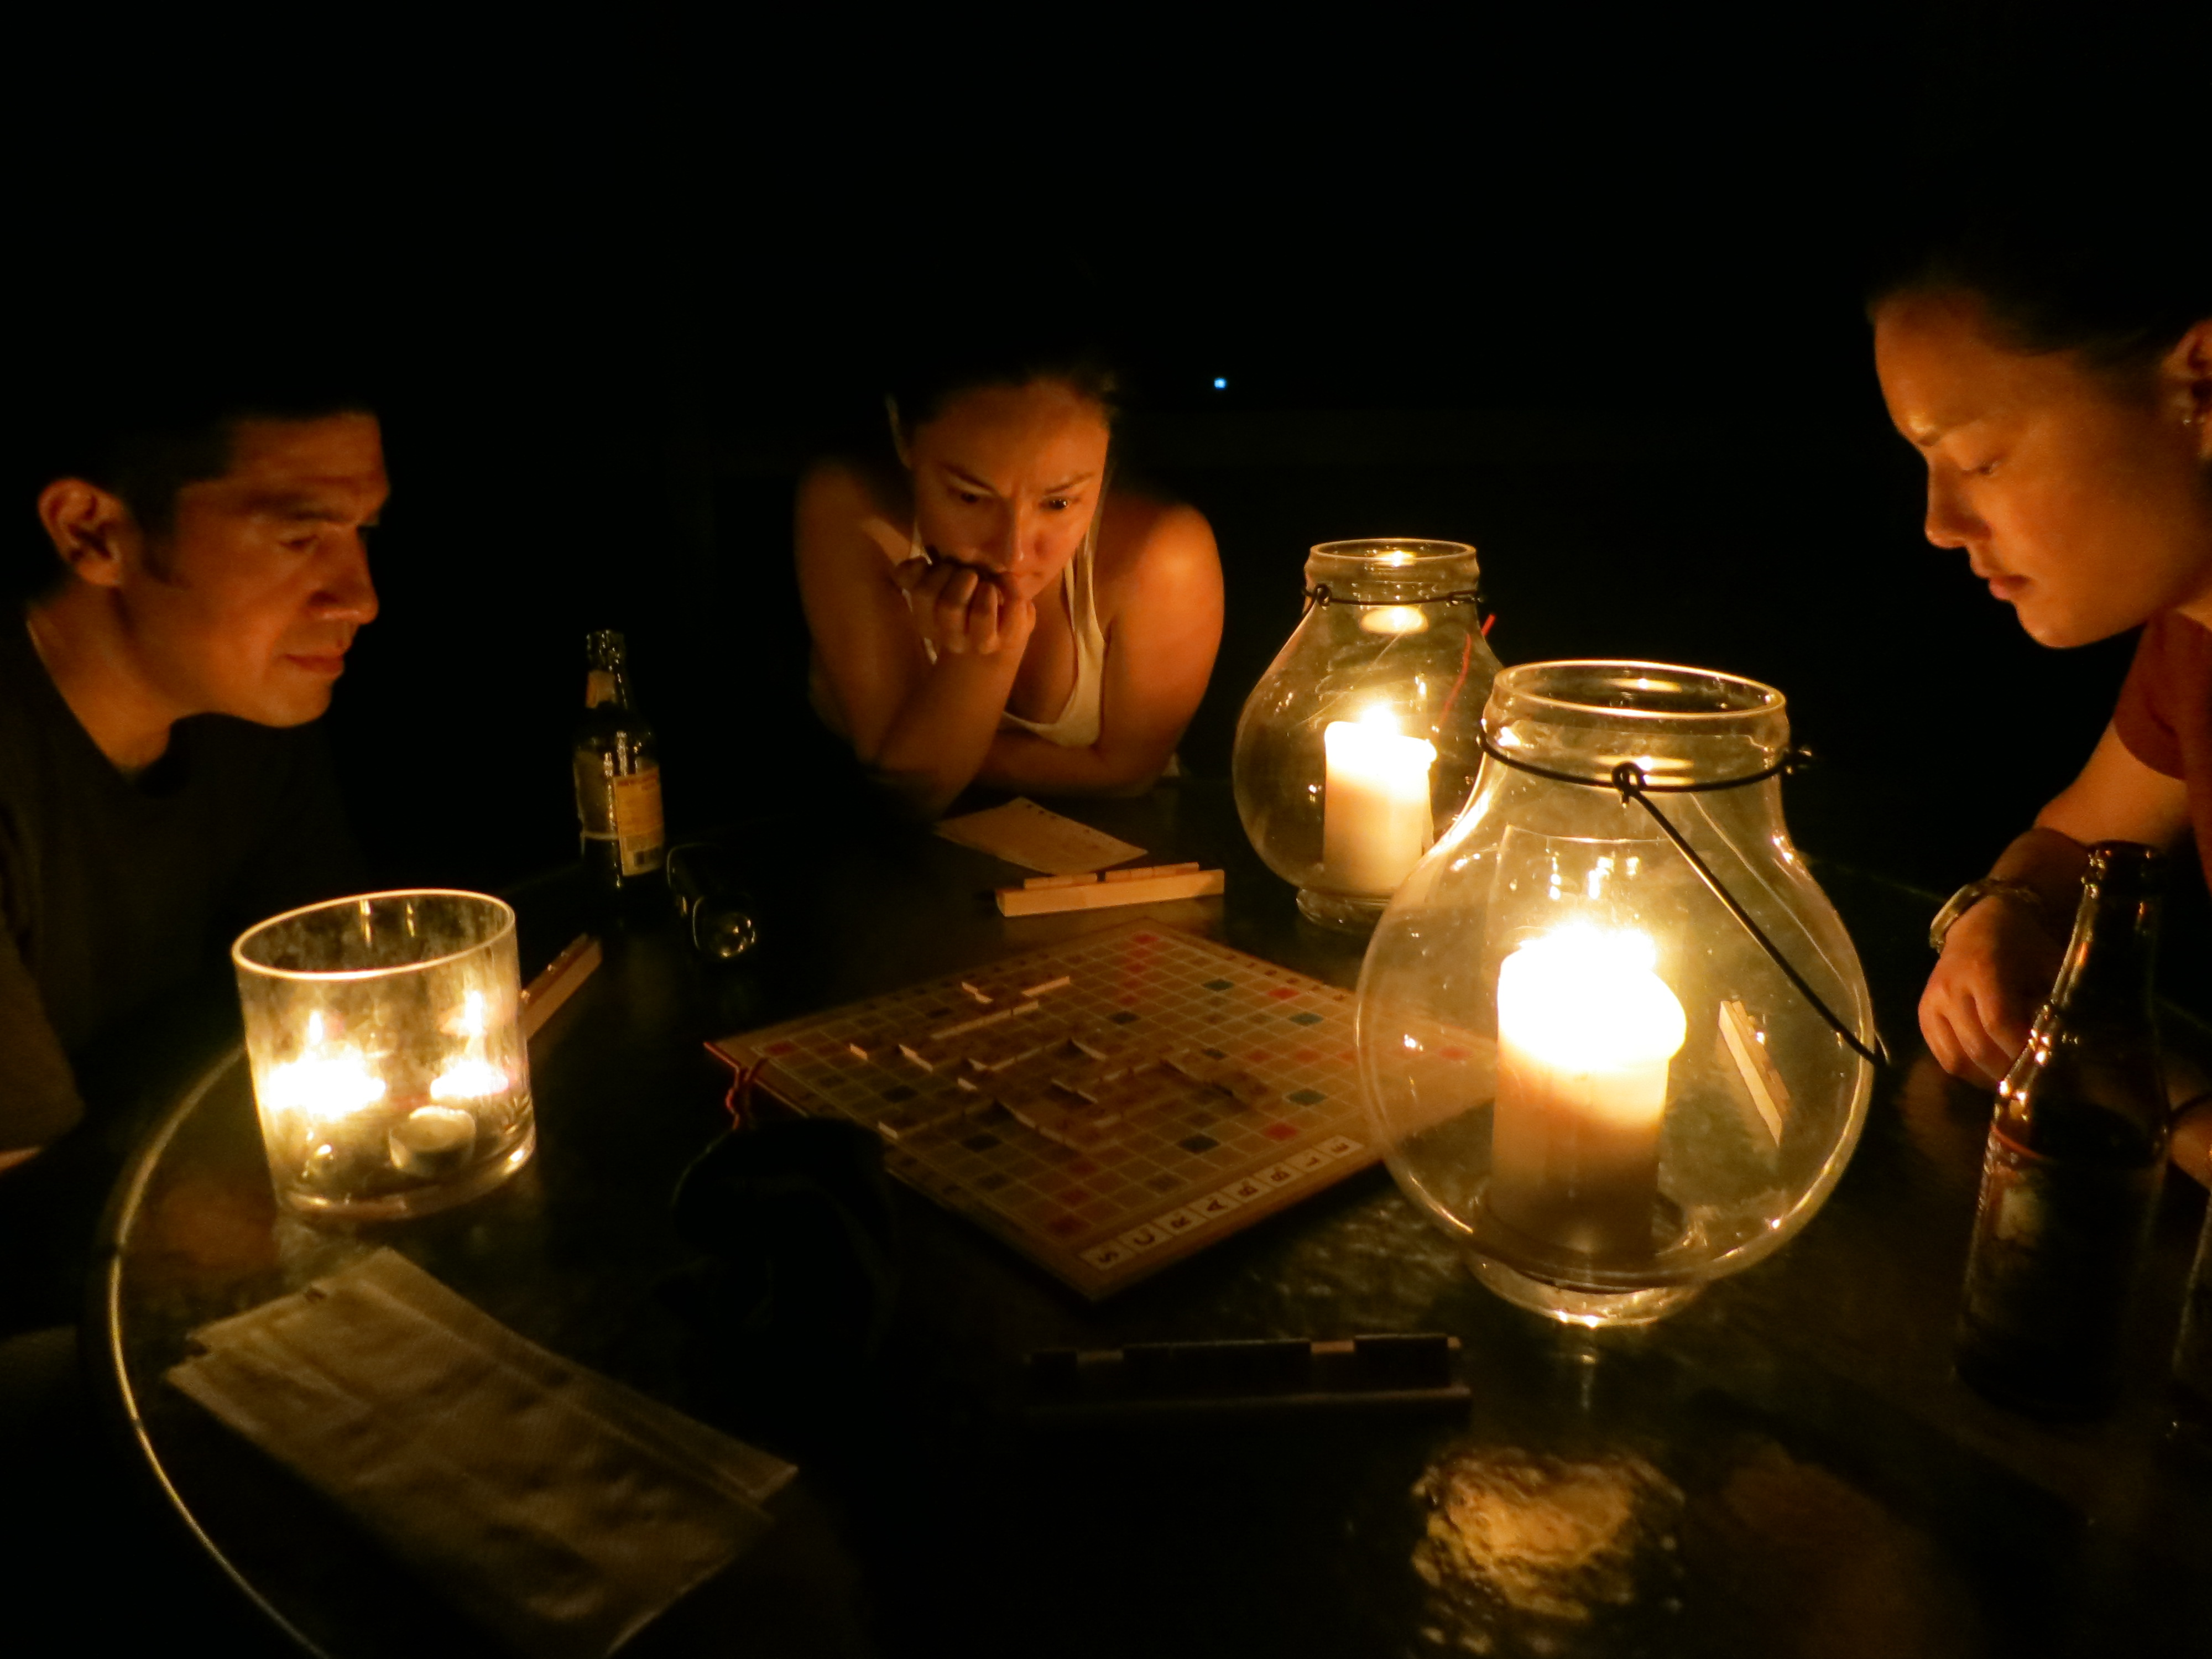 Scrabble by Candlelight